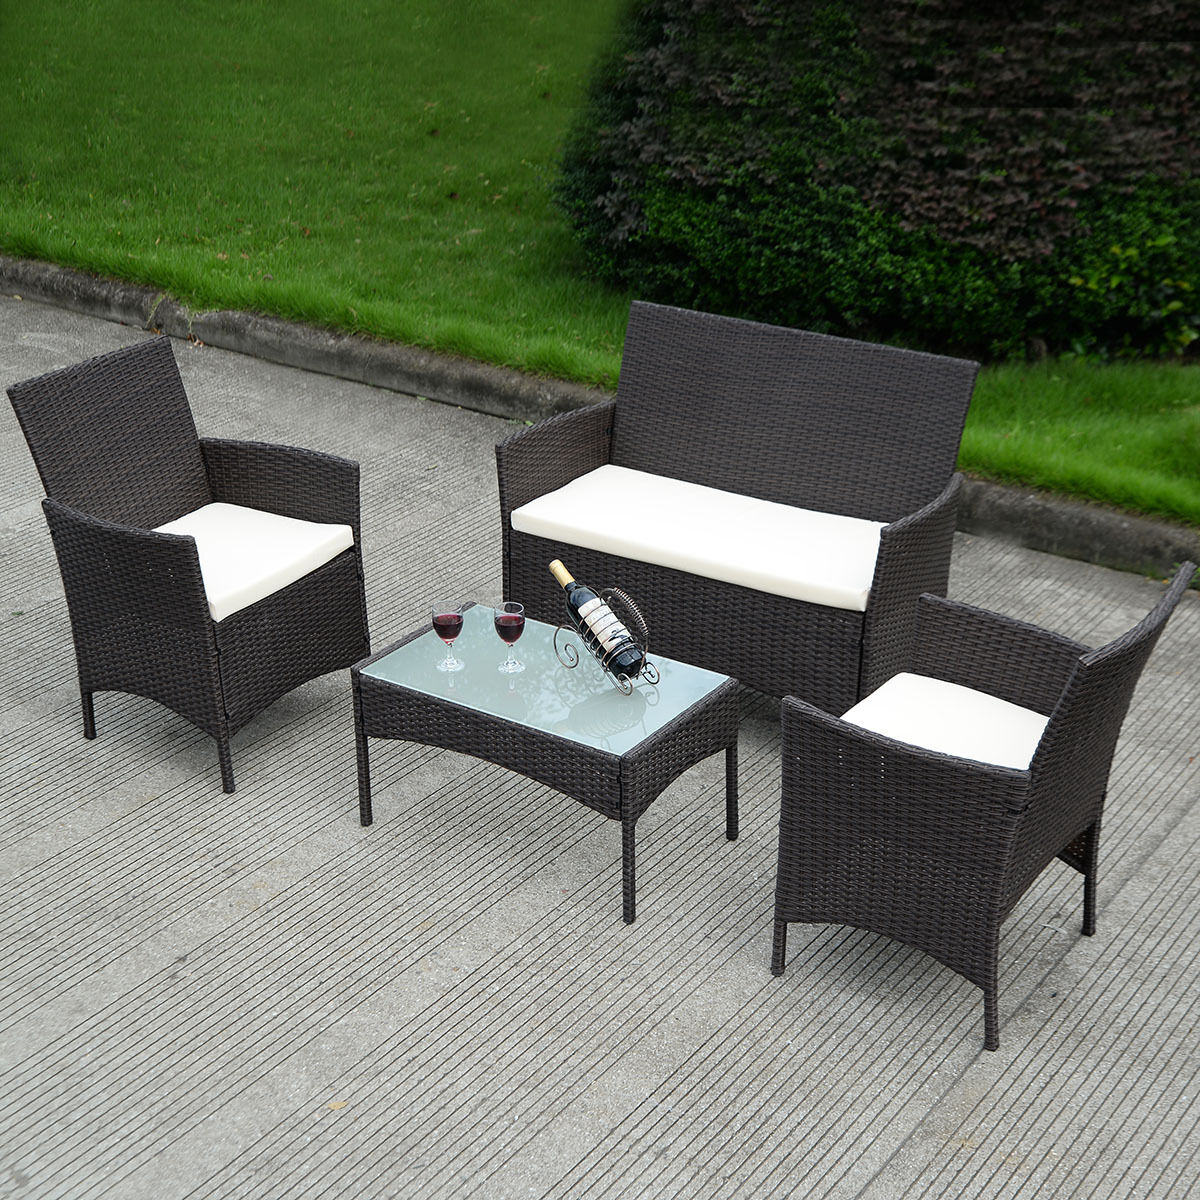 High Quality Costway 4 PC Patio Rattan Wicker Chair Sofa Table Set Outdoor Garden  Furniture Cushioned